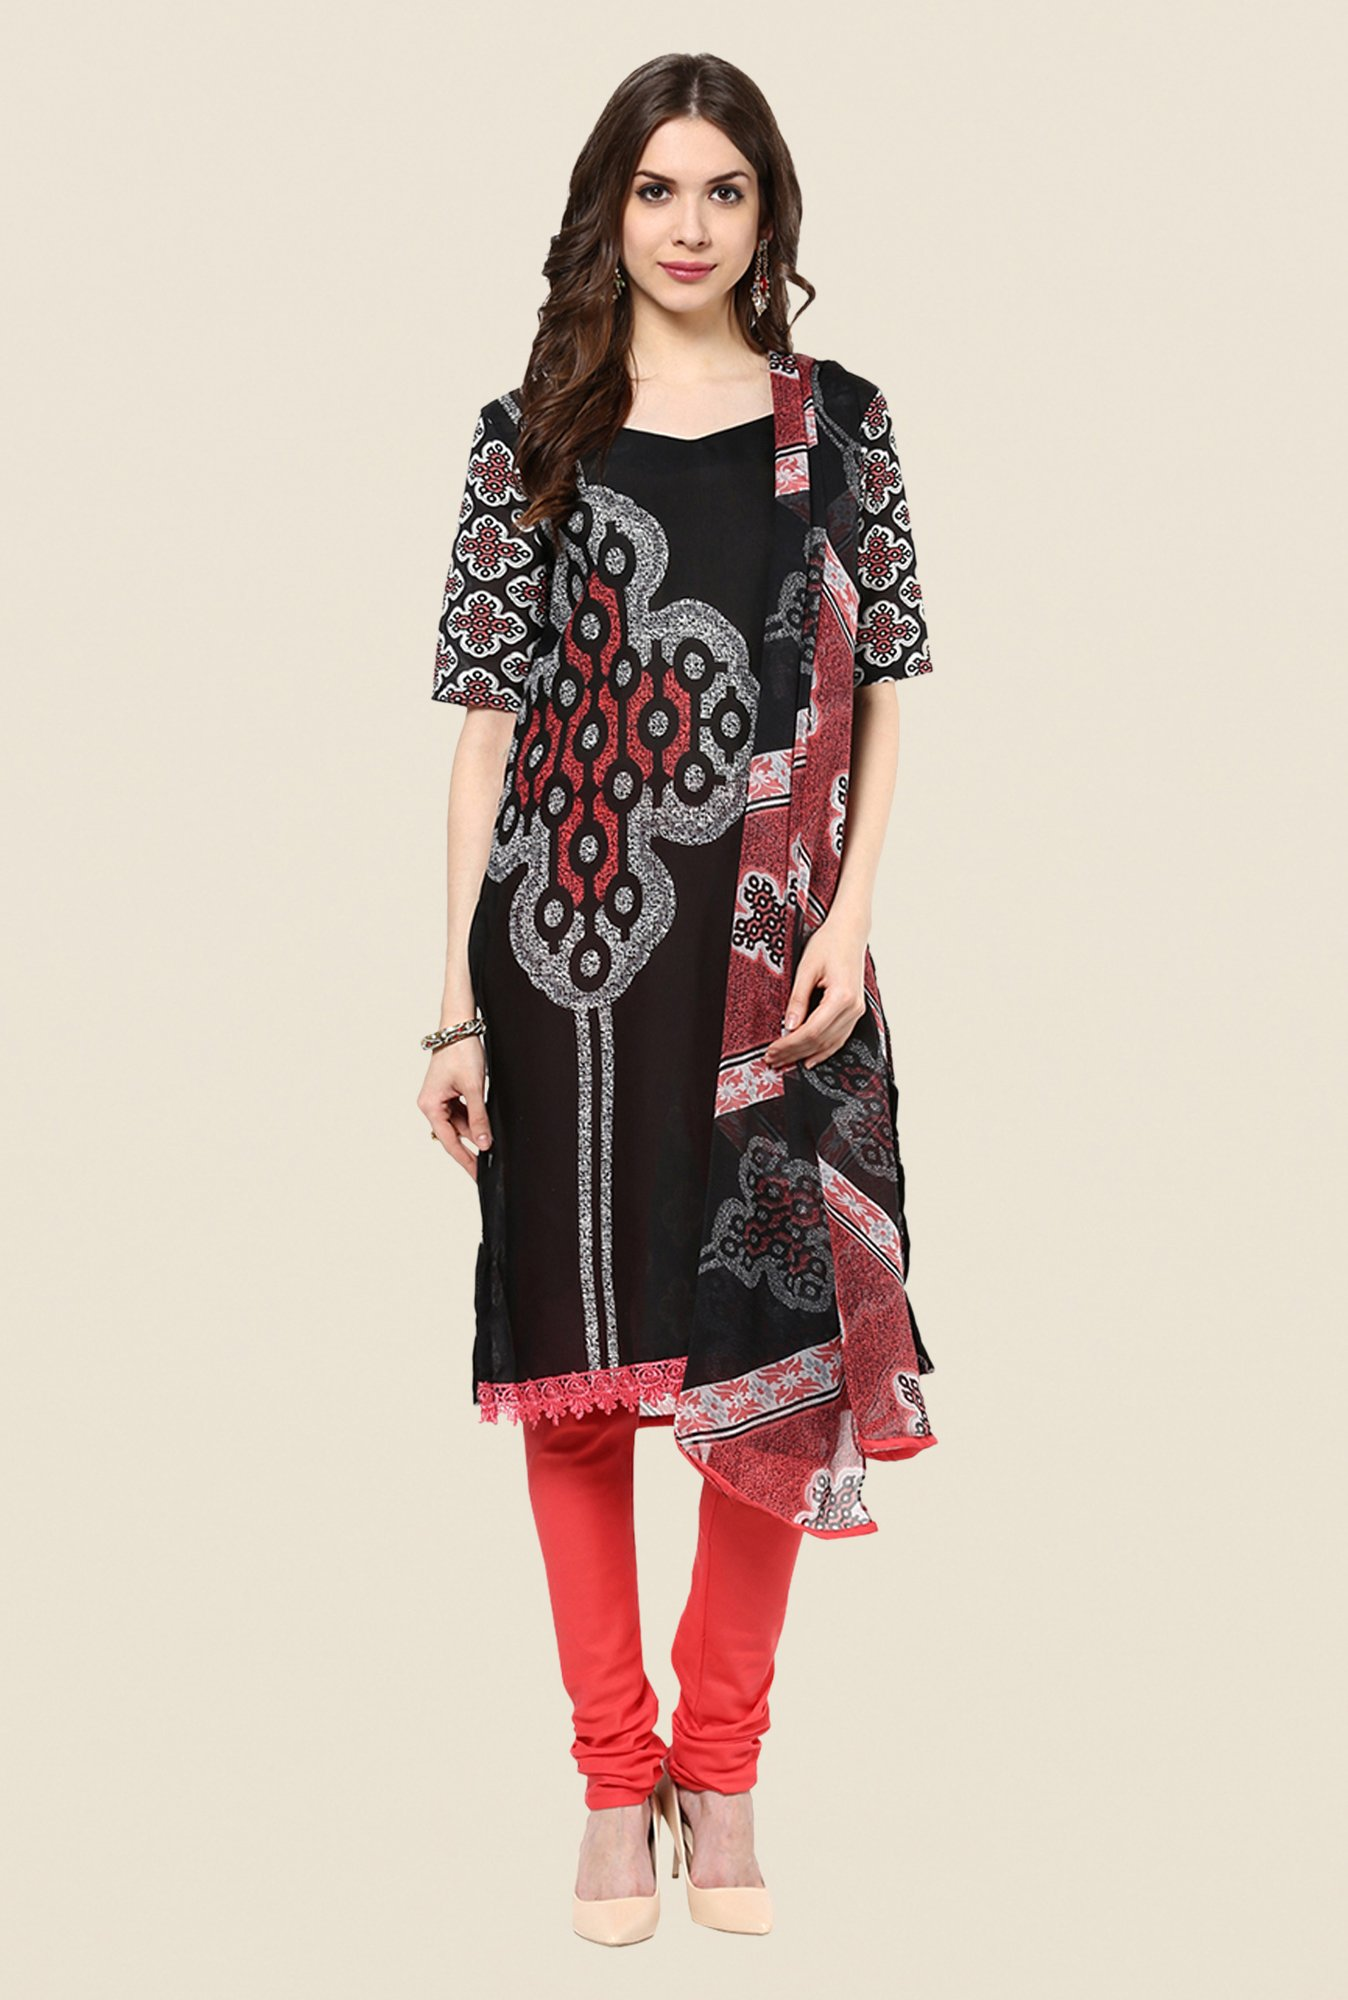 Yepme Lois Black & Coral Salwar Suit Set